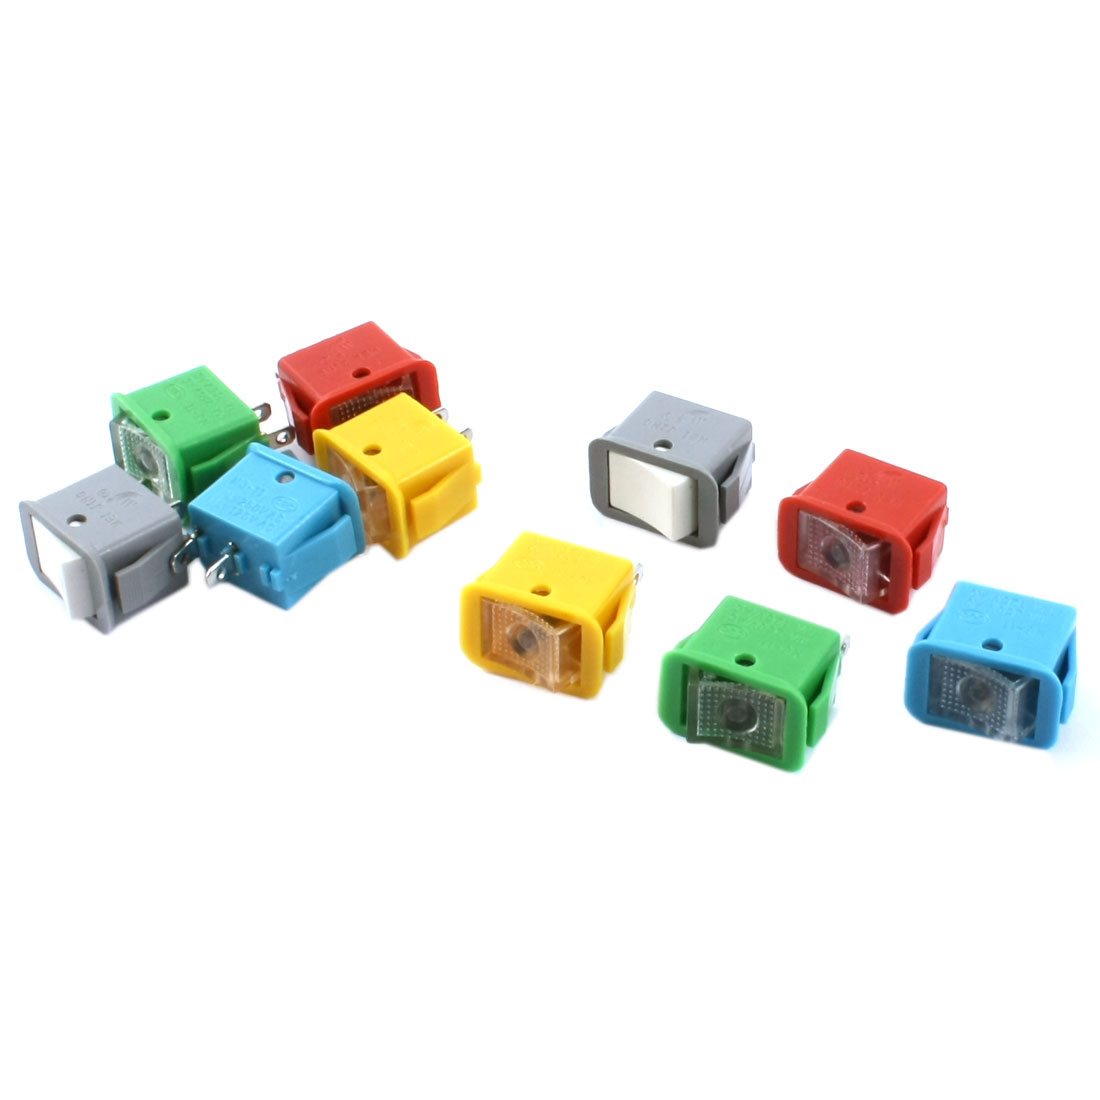 10pcs Latching SPST 2 Positions Rocker Switch AC250V/10A 125V/13A Colorful